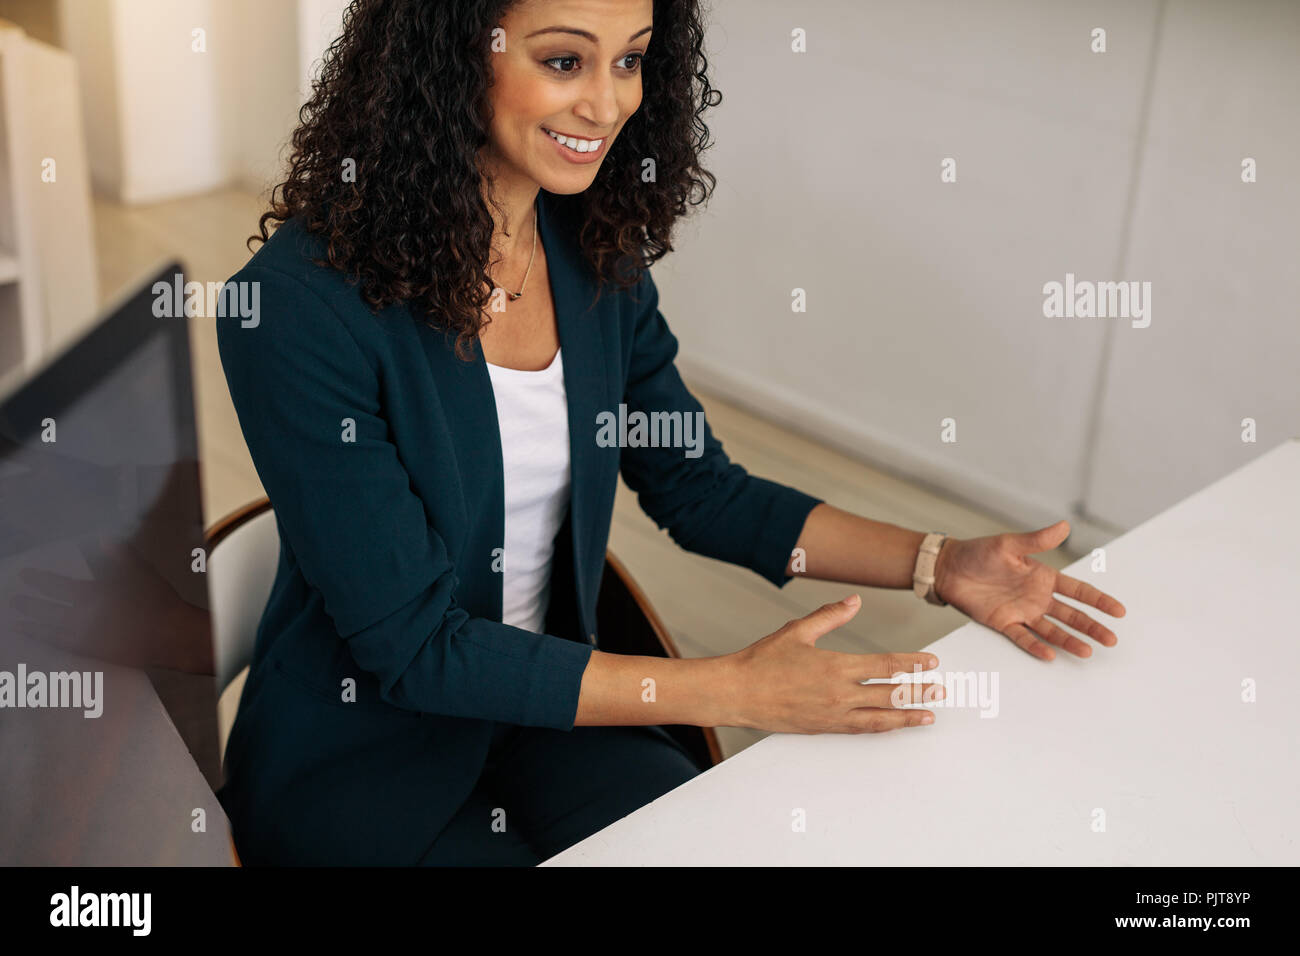 Smiling Businesswoman Sitting In Office Making Hand Gestures